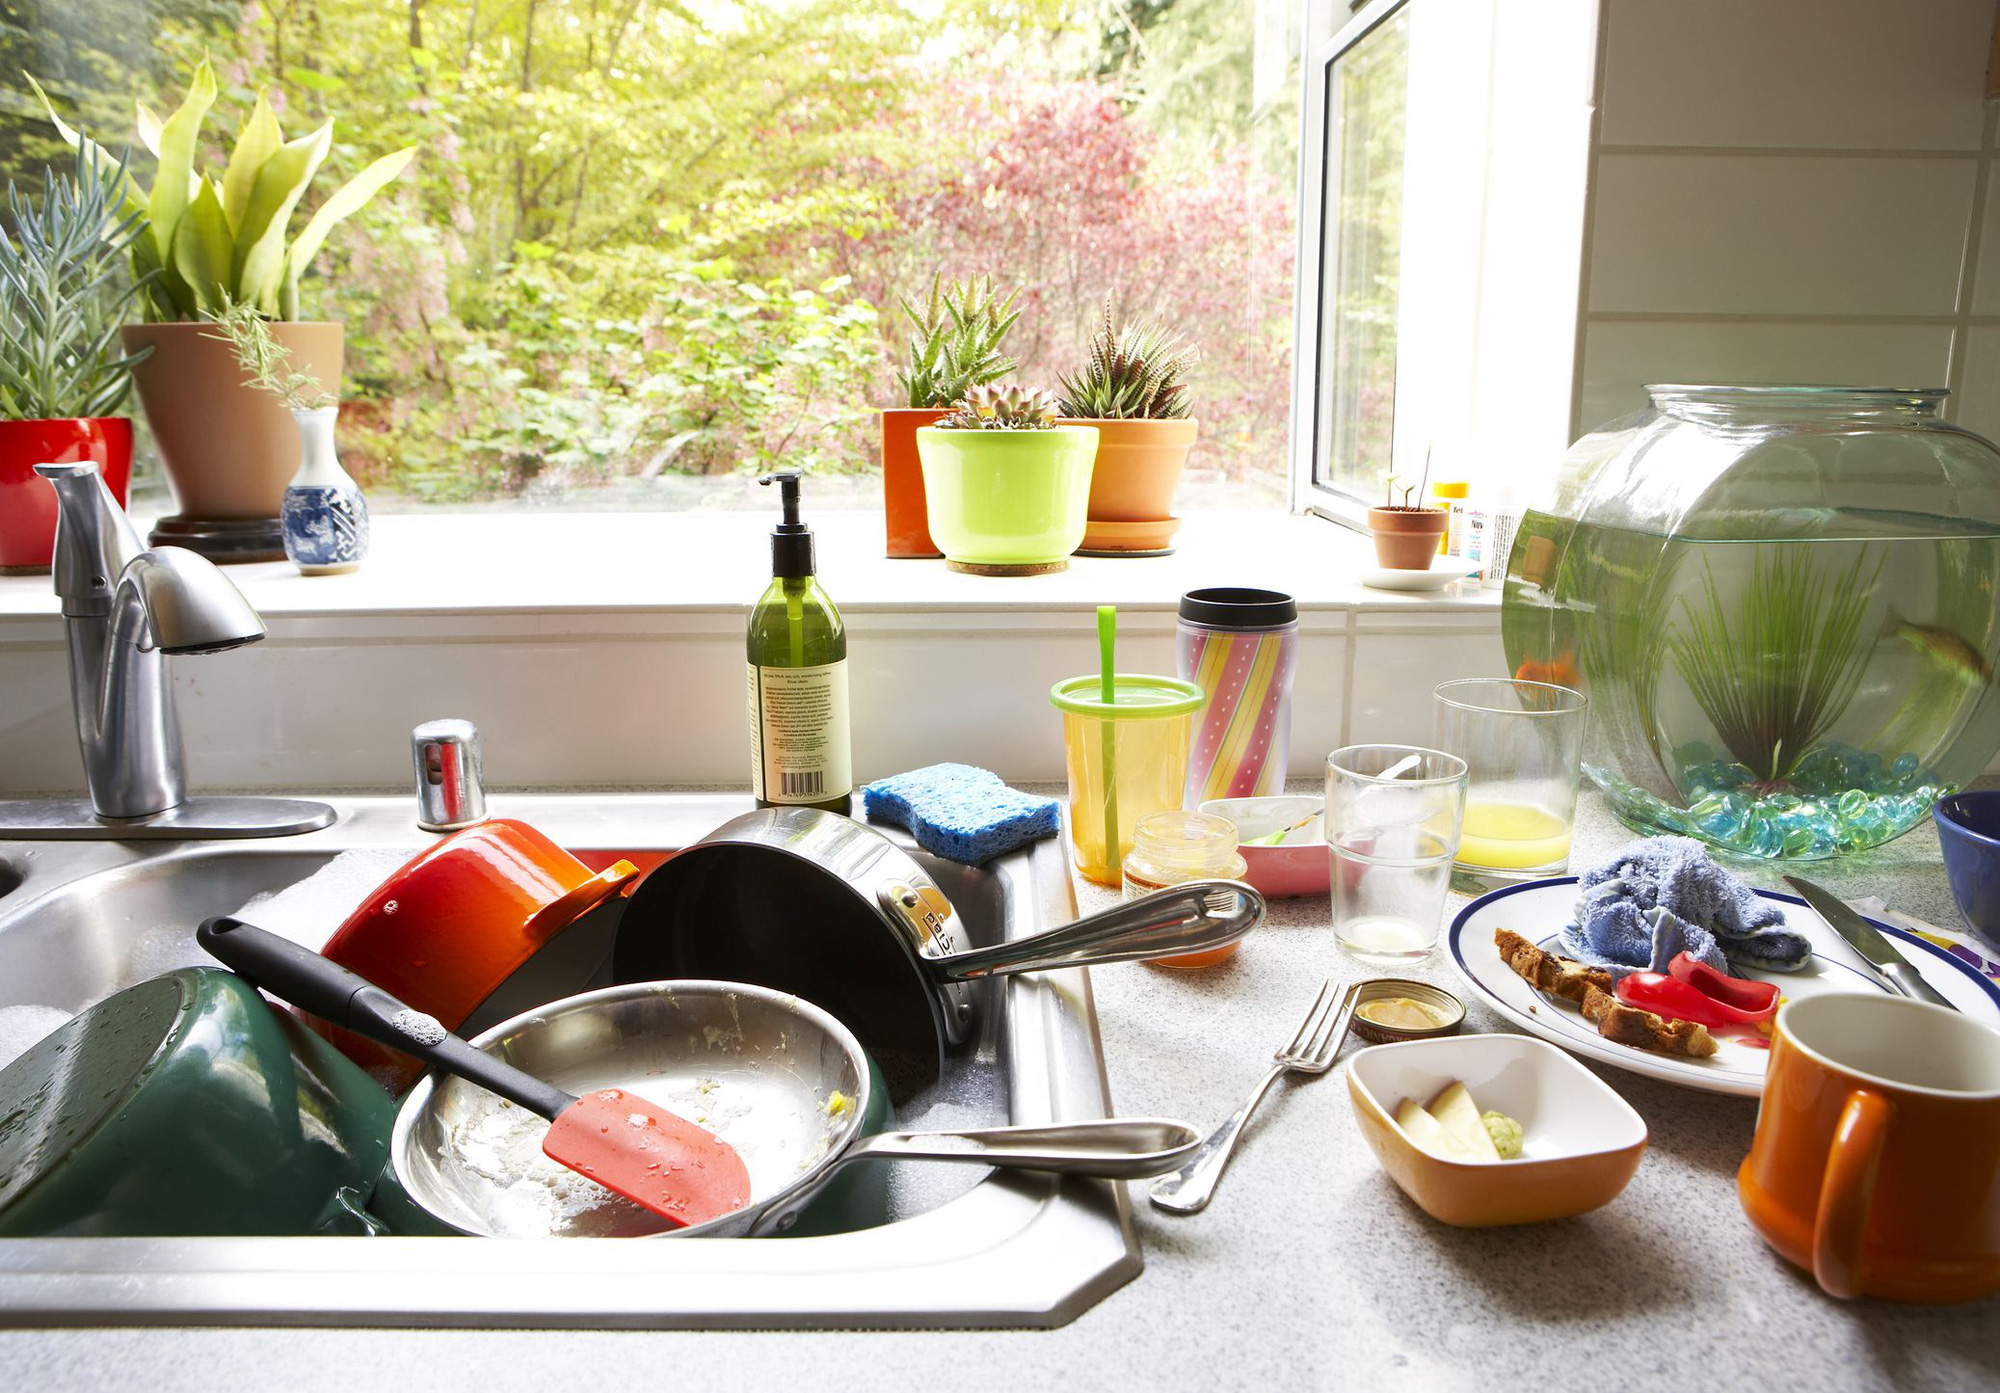 1495035481-dirty-dishes-piled-in-kitchen-sink-1632687691903202407946.jpg